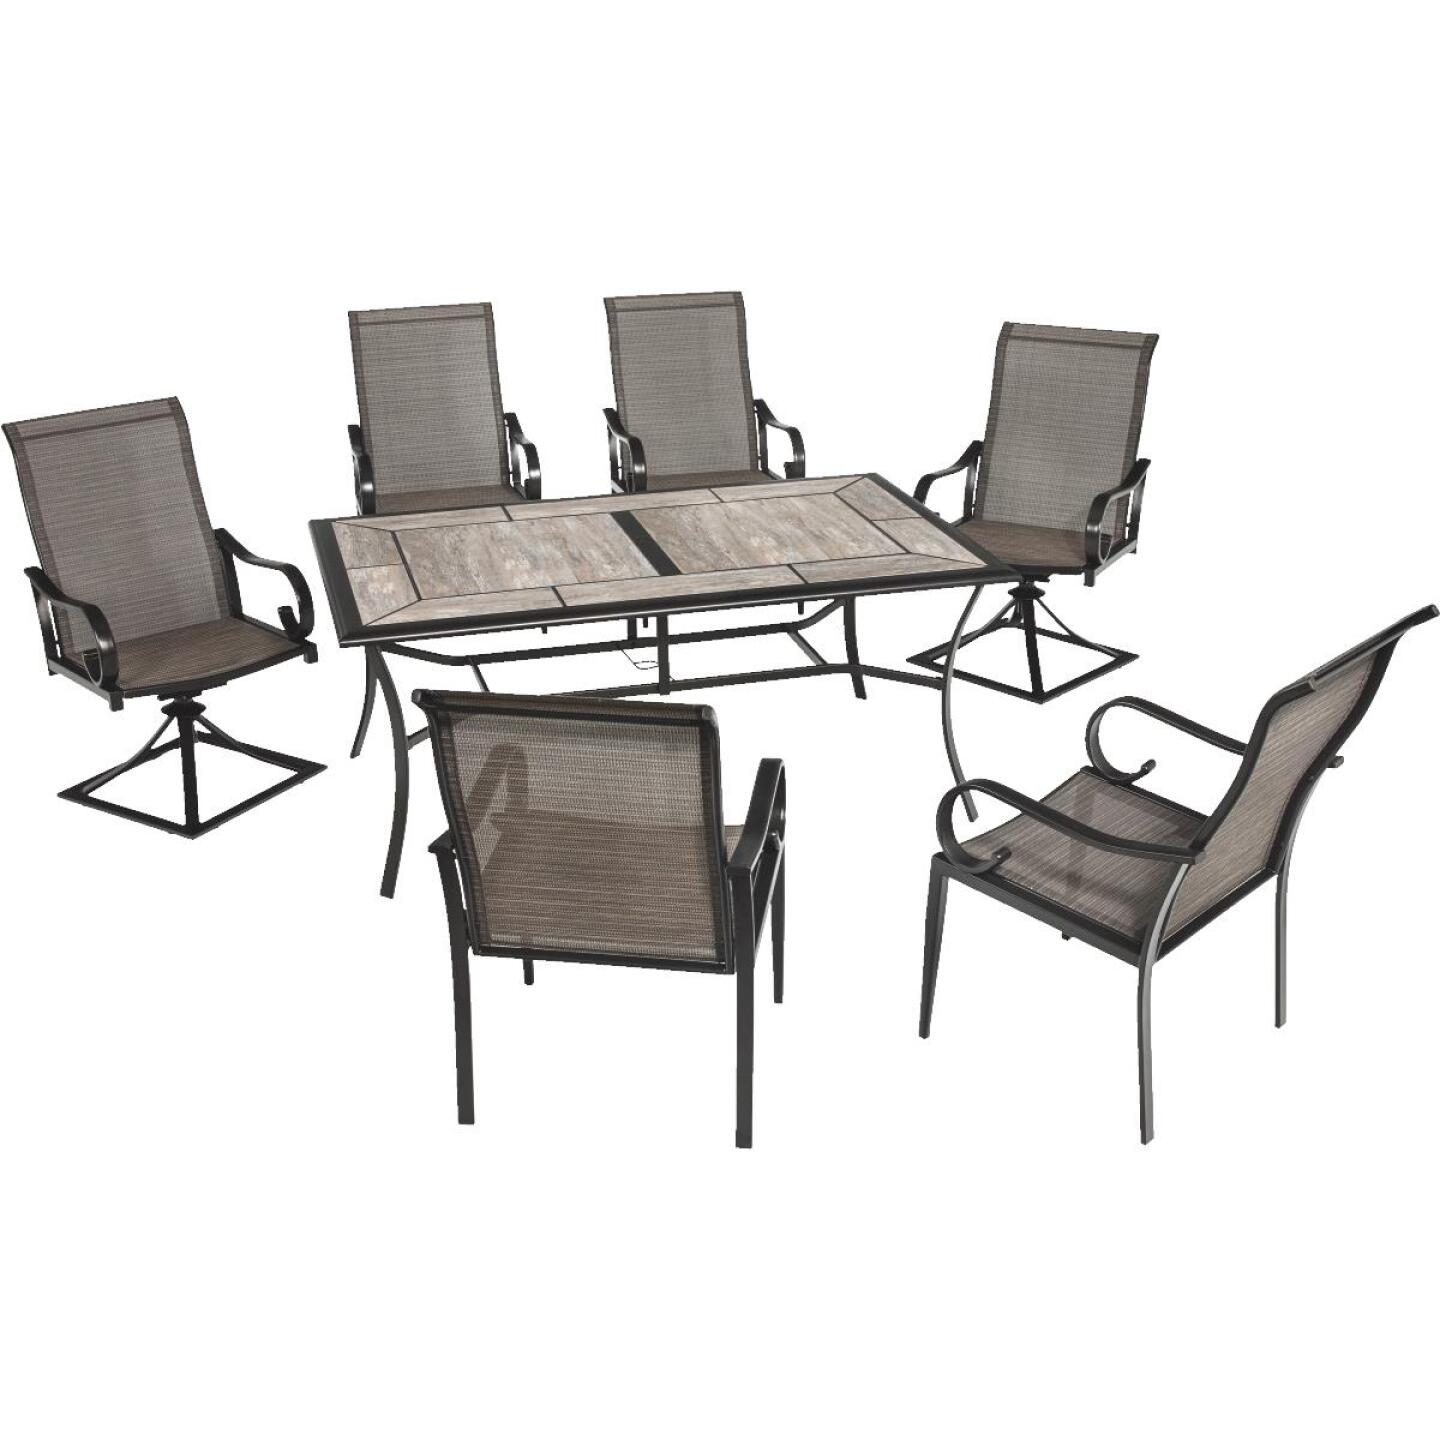 Outdoor Expressions Berkshire 7-Piece Dining Set Image 150